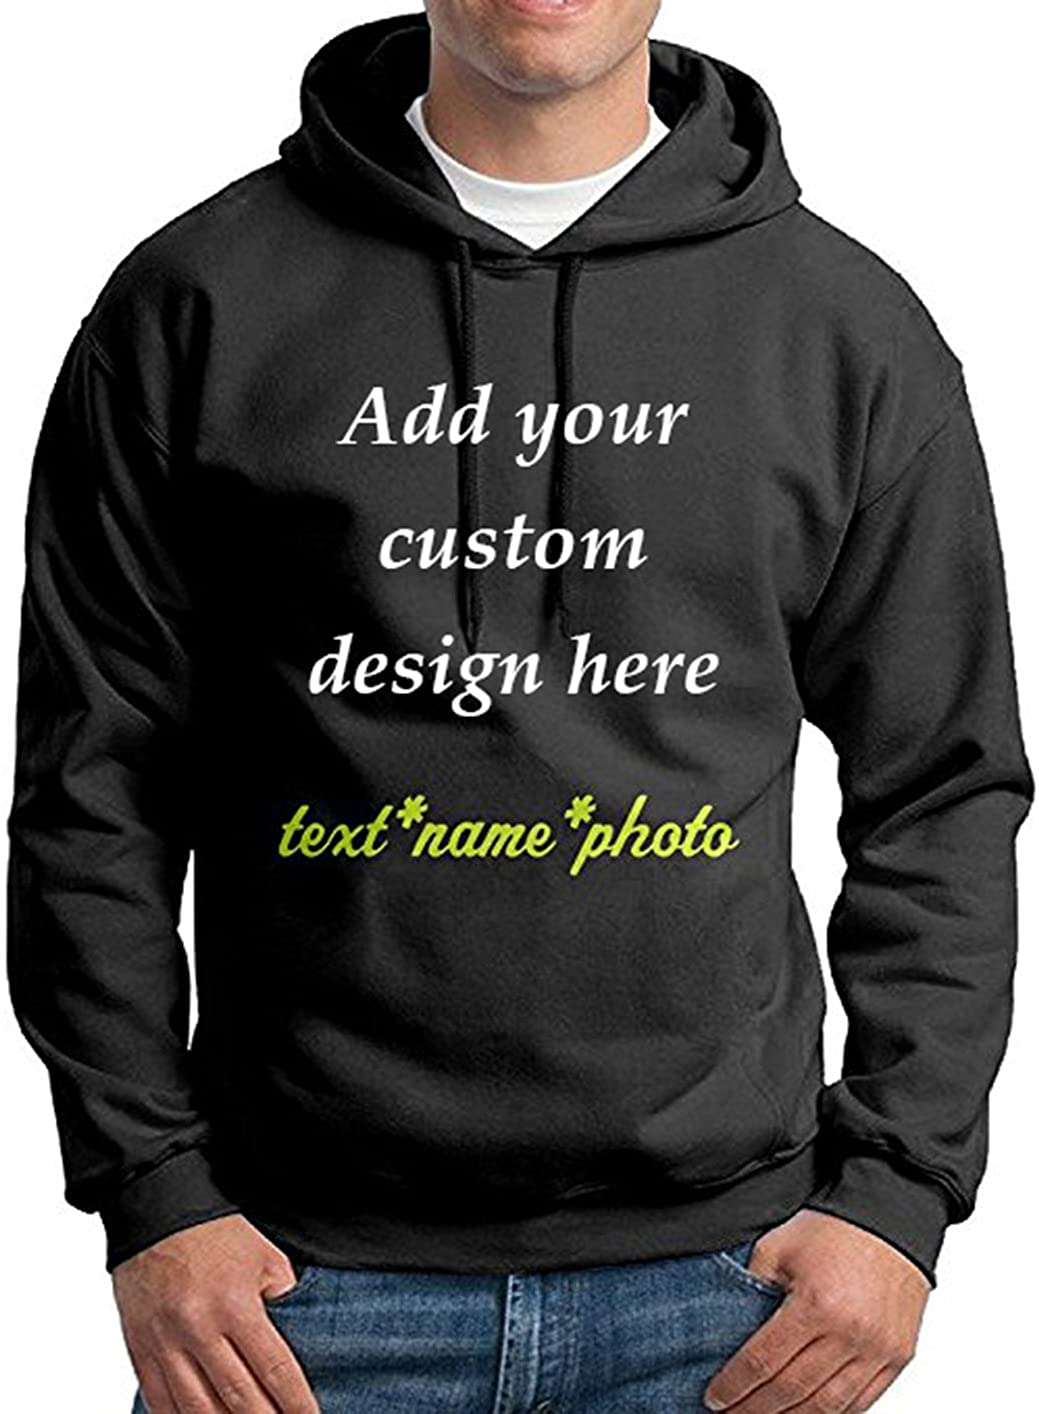 Personalized guys hoodie